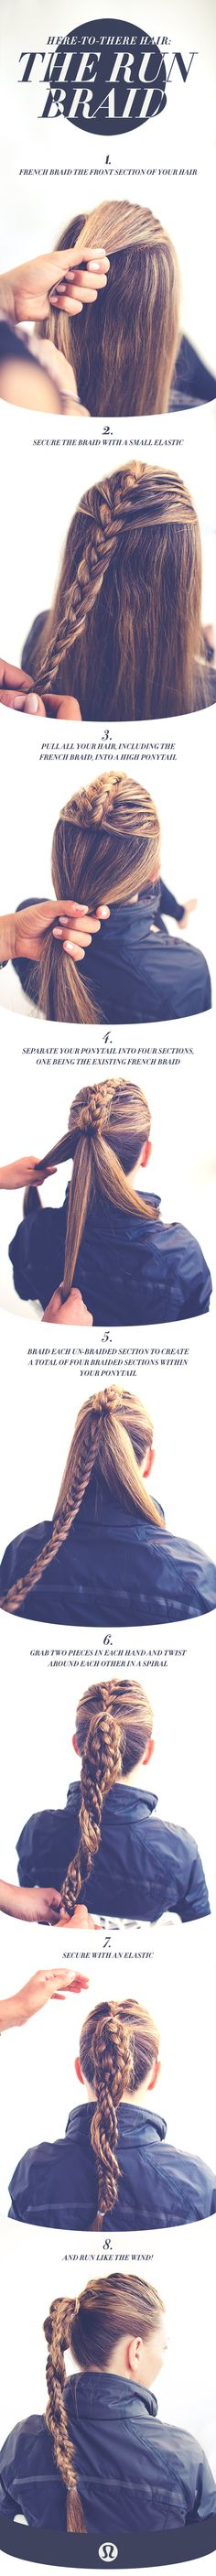 Here-to-there hair: Watch and learn how to create the perfect run braid... POST YOUR FREE LISTING TODAY! Hair News Network. All Hair. All The Time. http://www.HairNewsNetwork.com